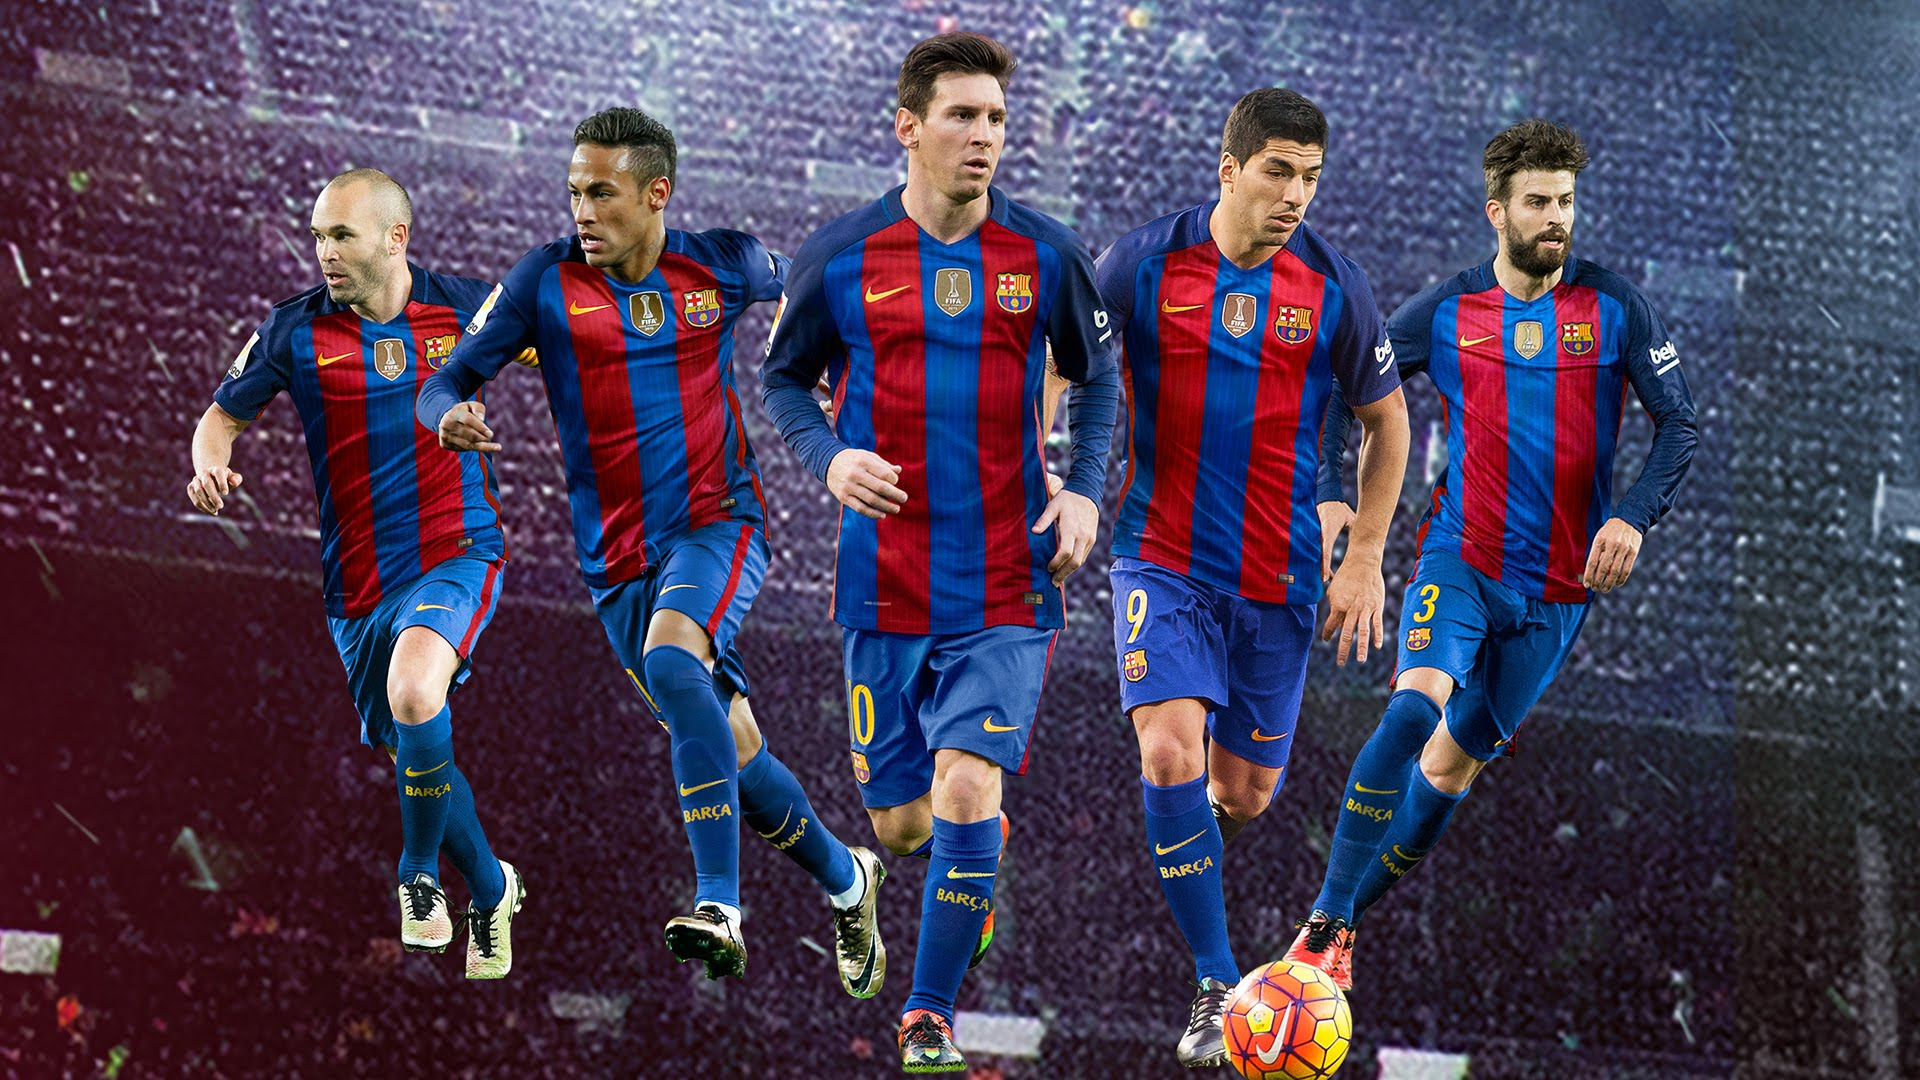 FC Barcelona   The champions are back 1920x1080